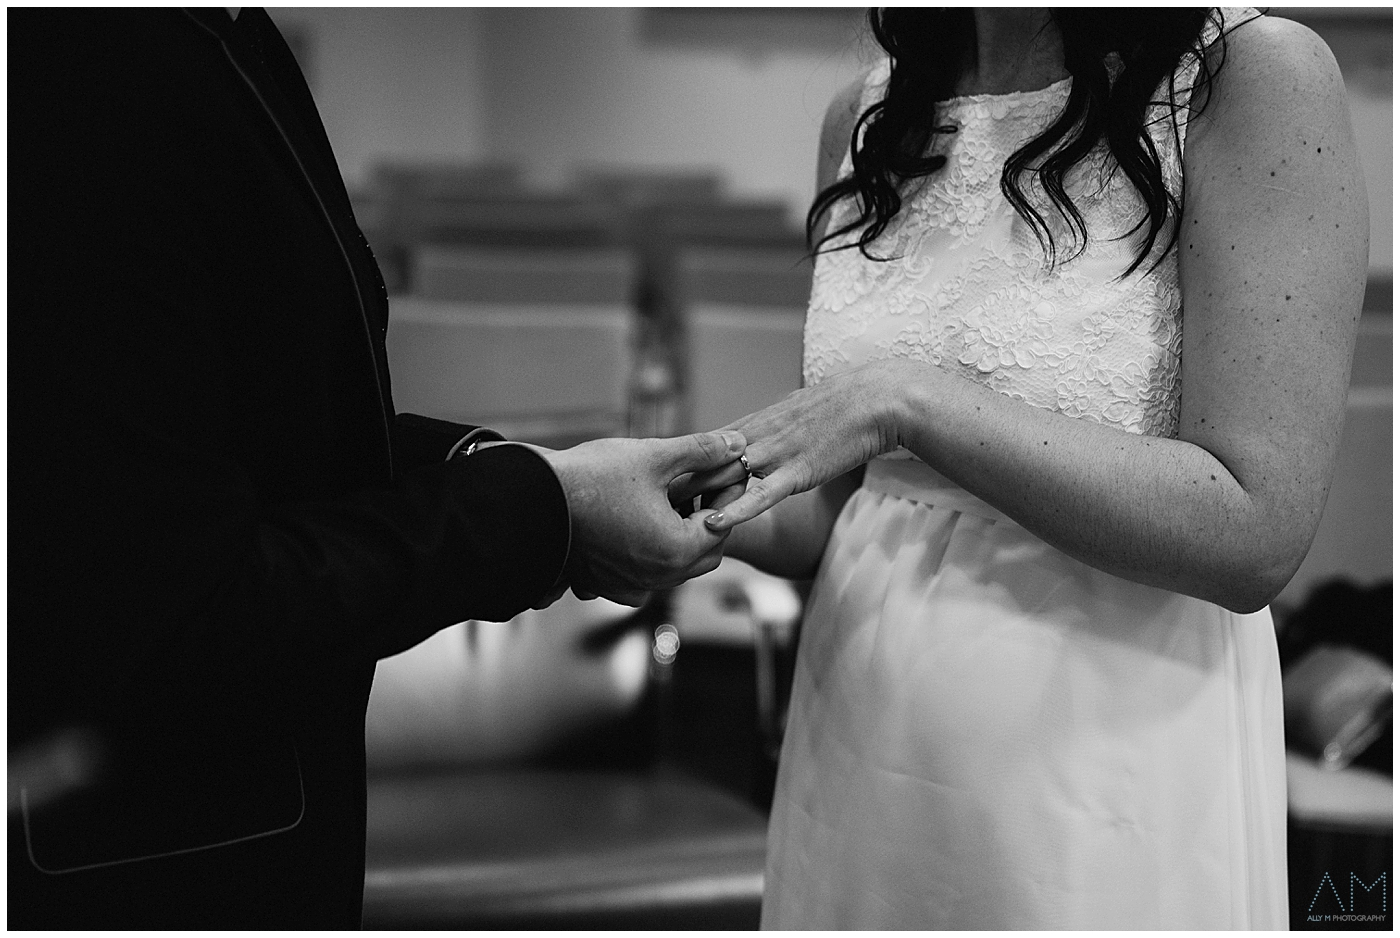 placing the wedding ring on the brides finger